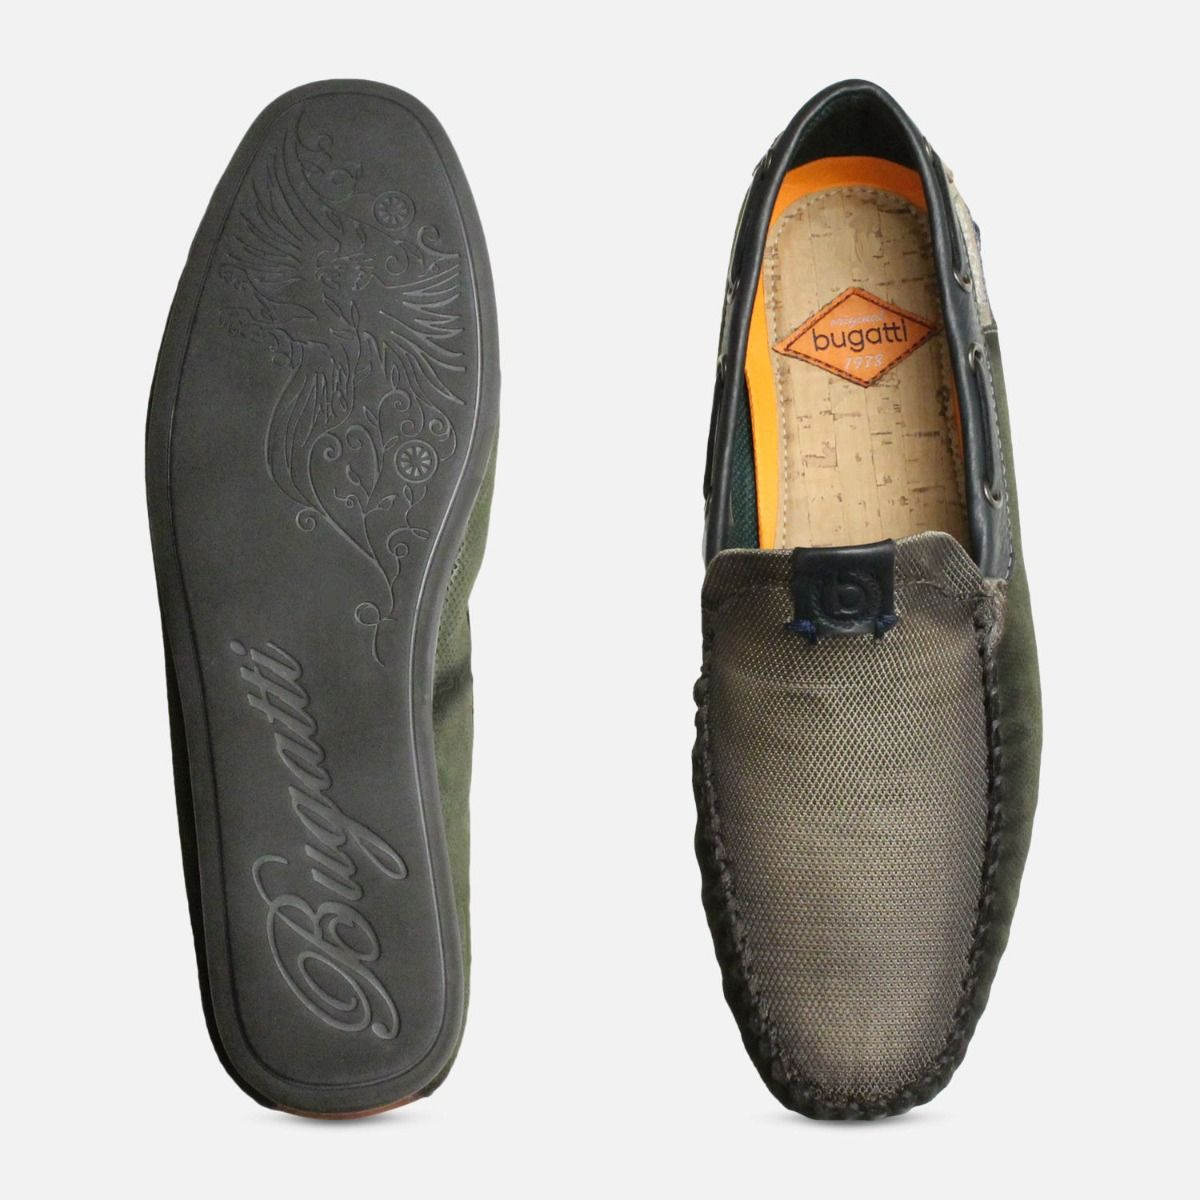 Smoked Bugatti Loafers in Moss Green Suede